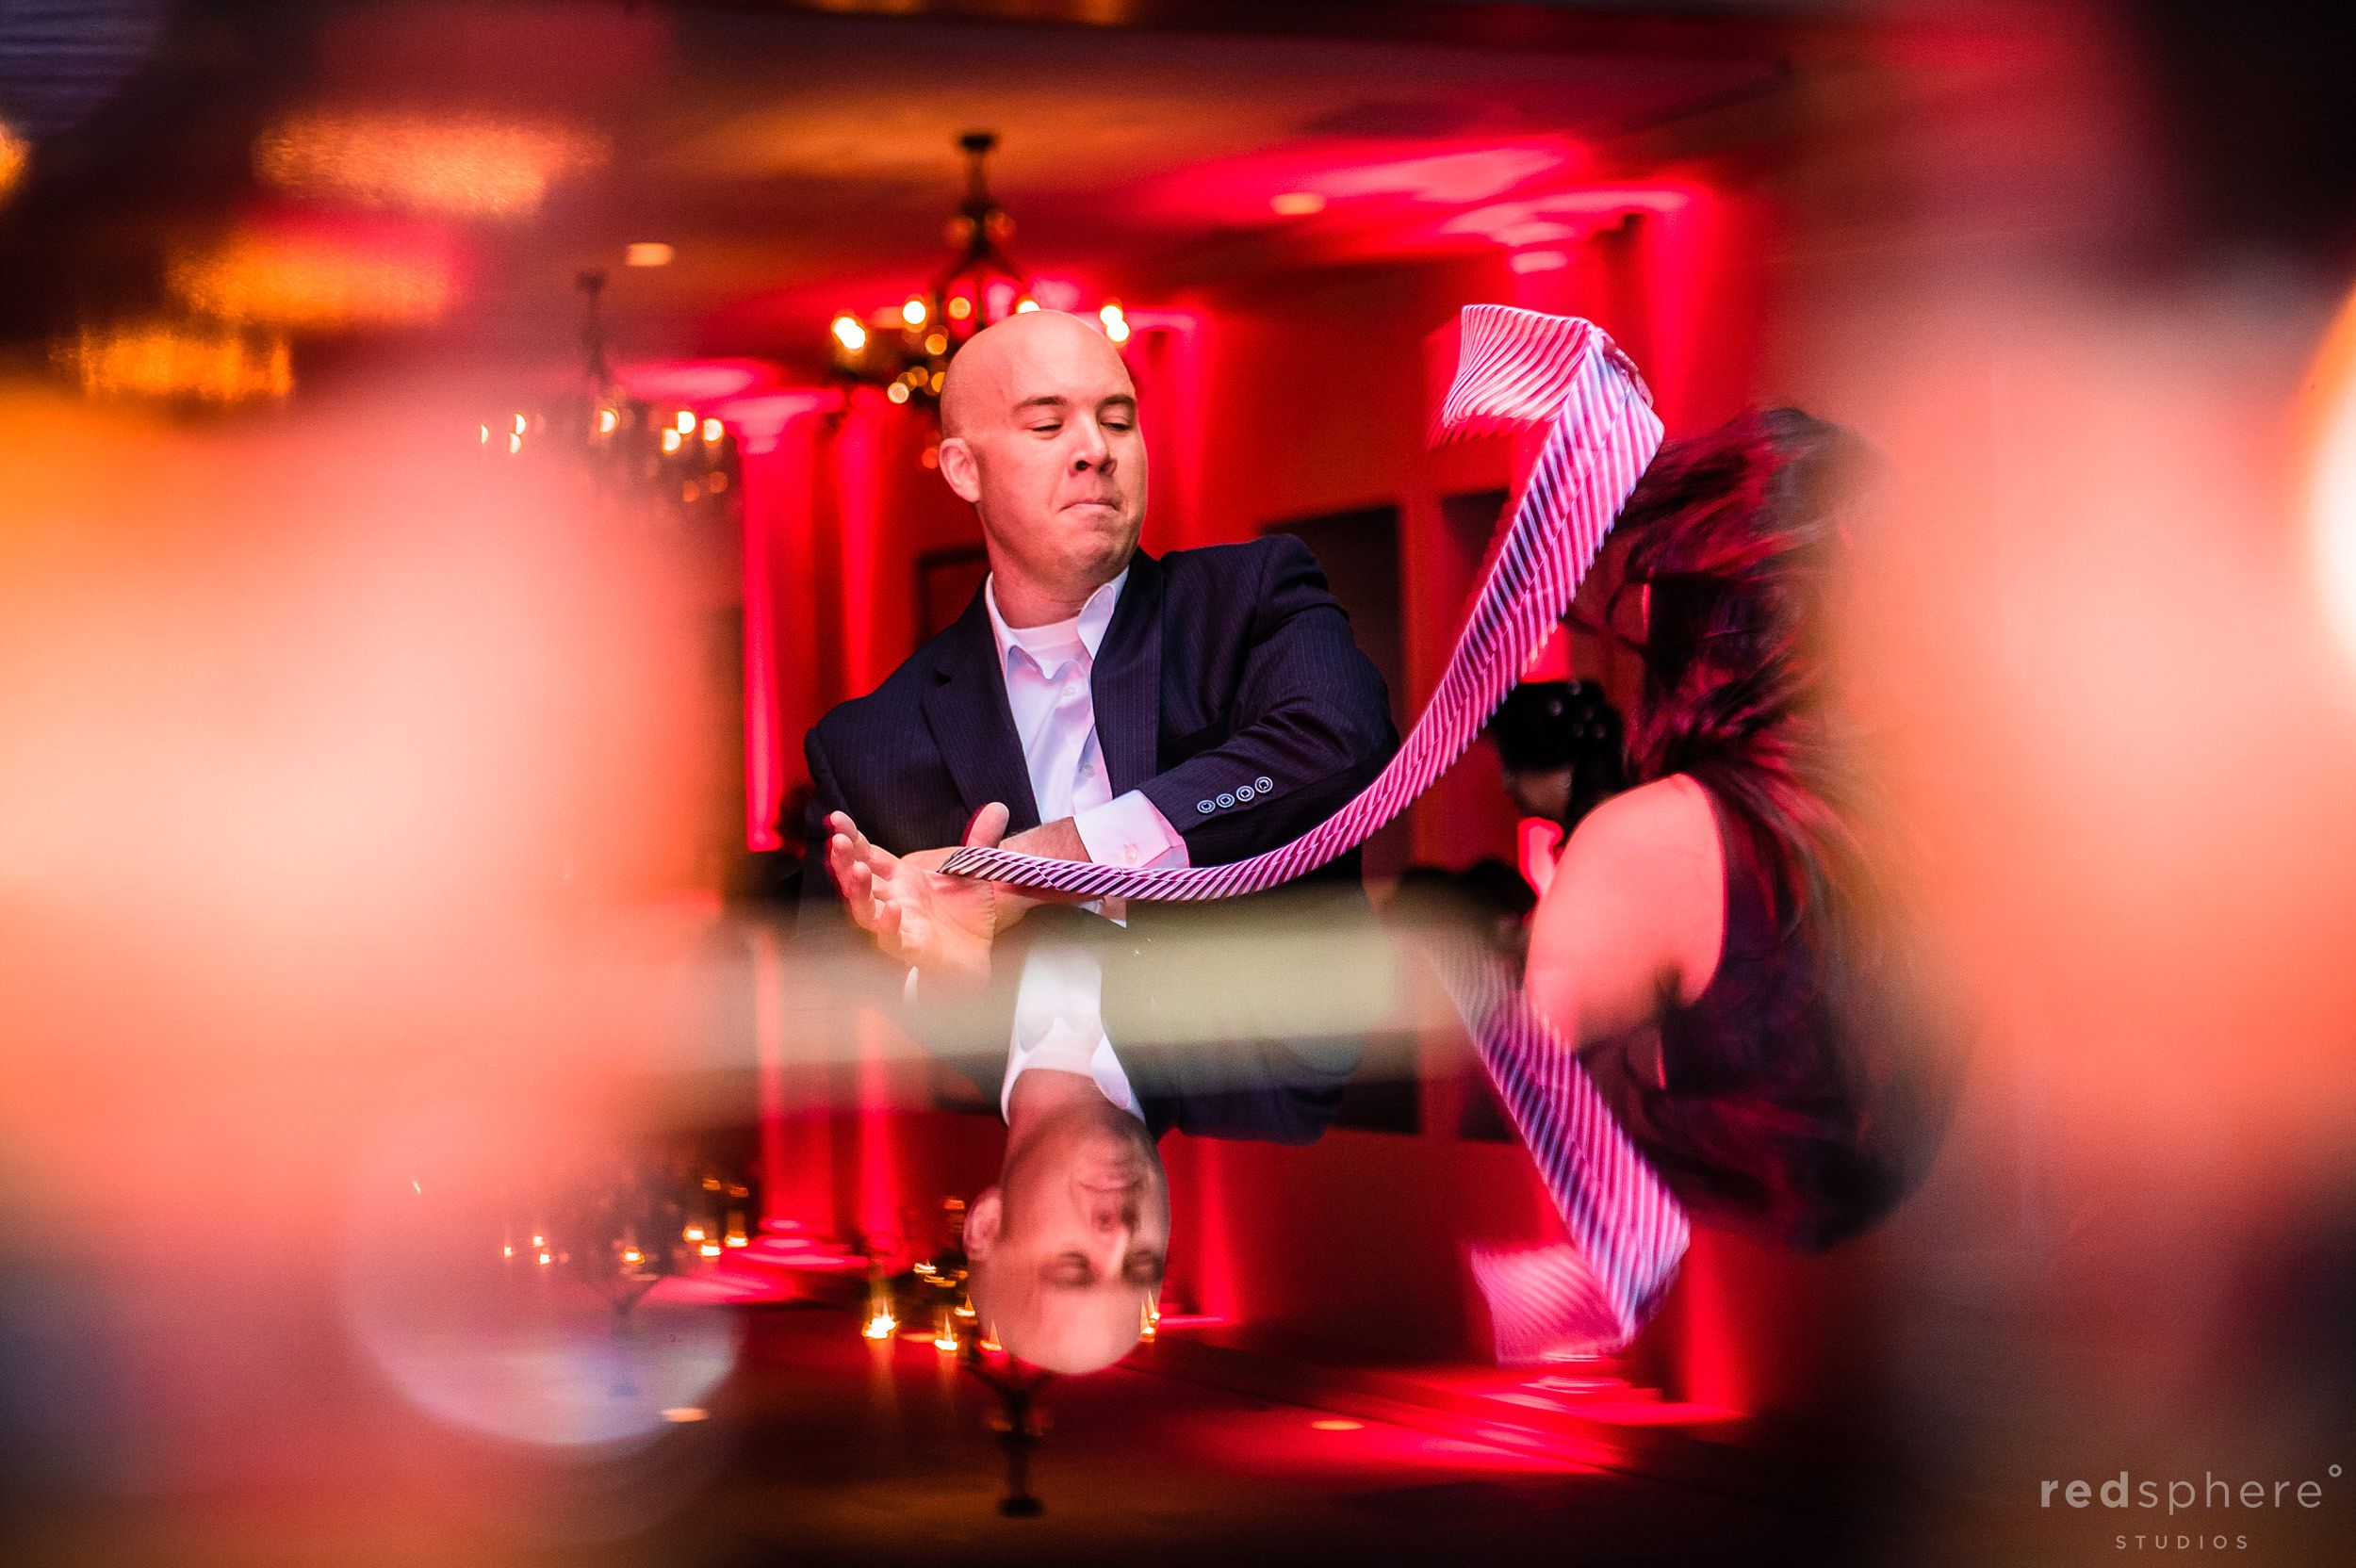 Guests Dancing and Table Reflections Of An Amazing Night, Bokeh